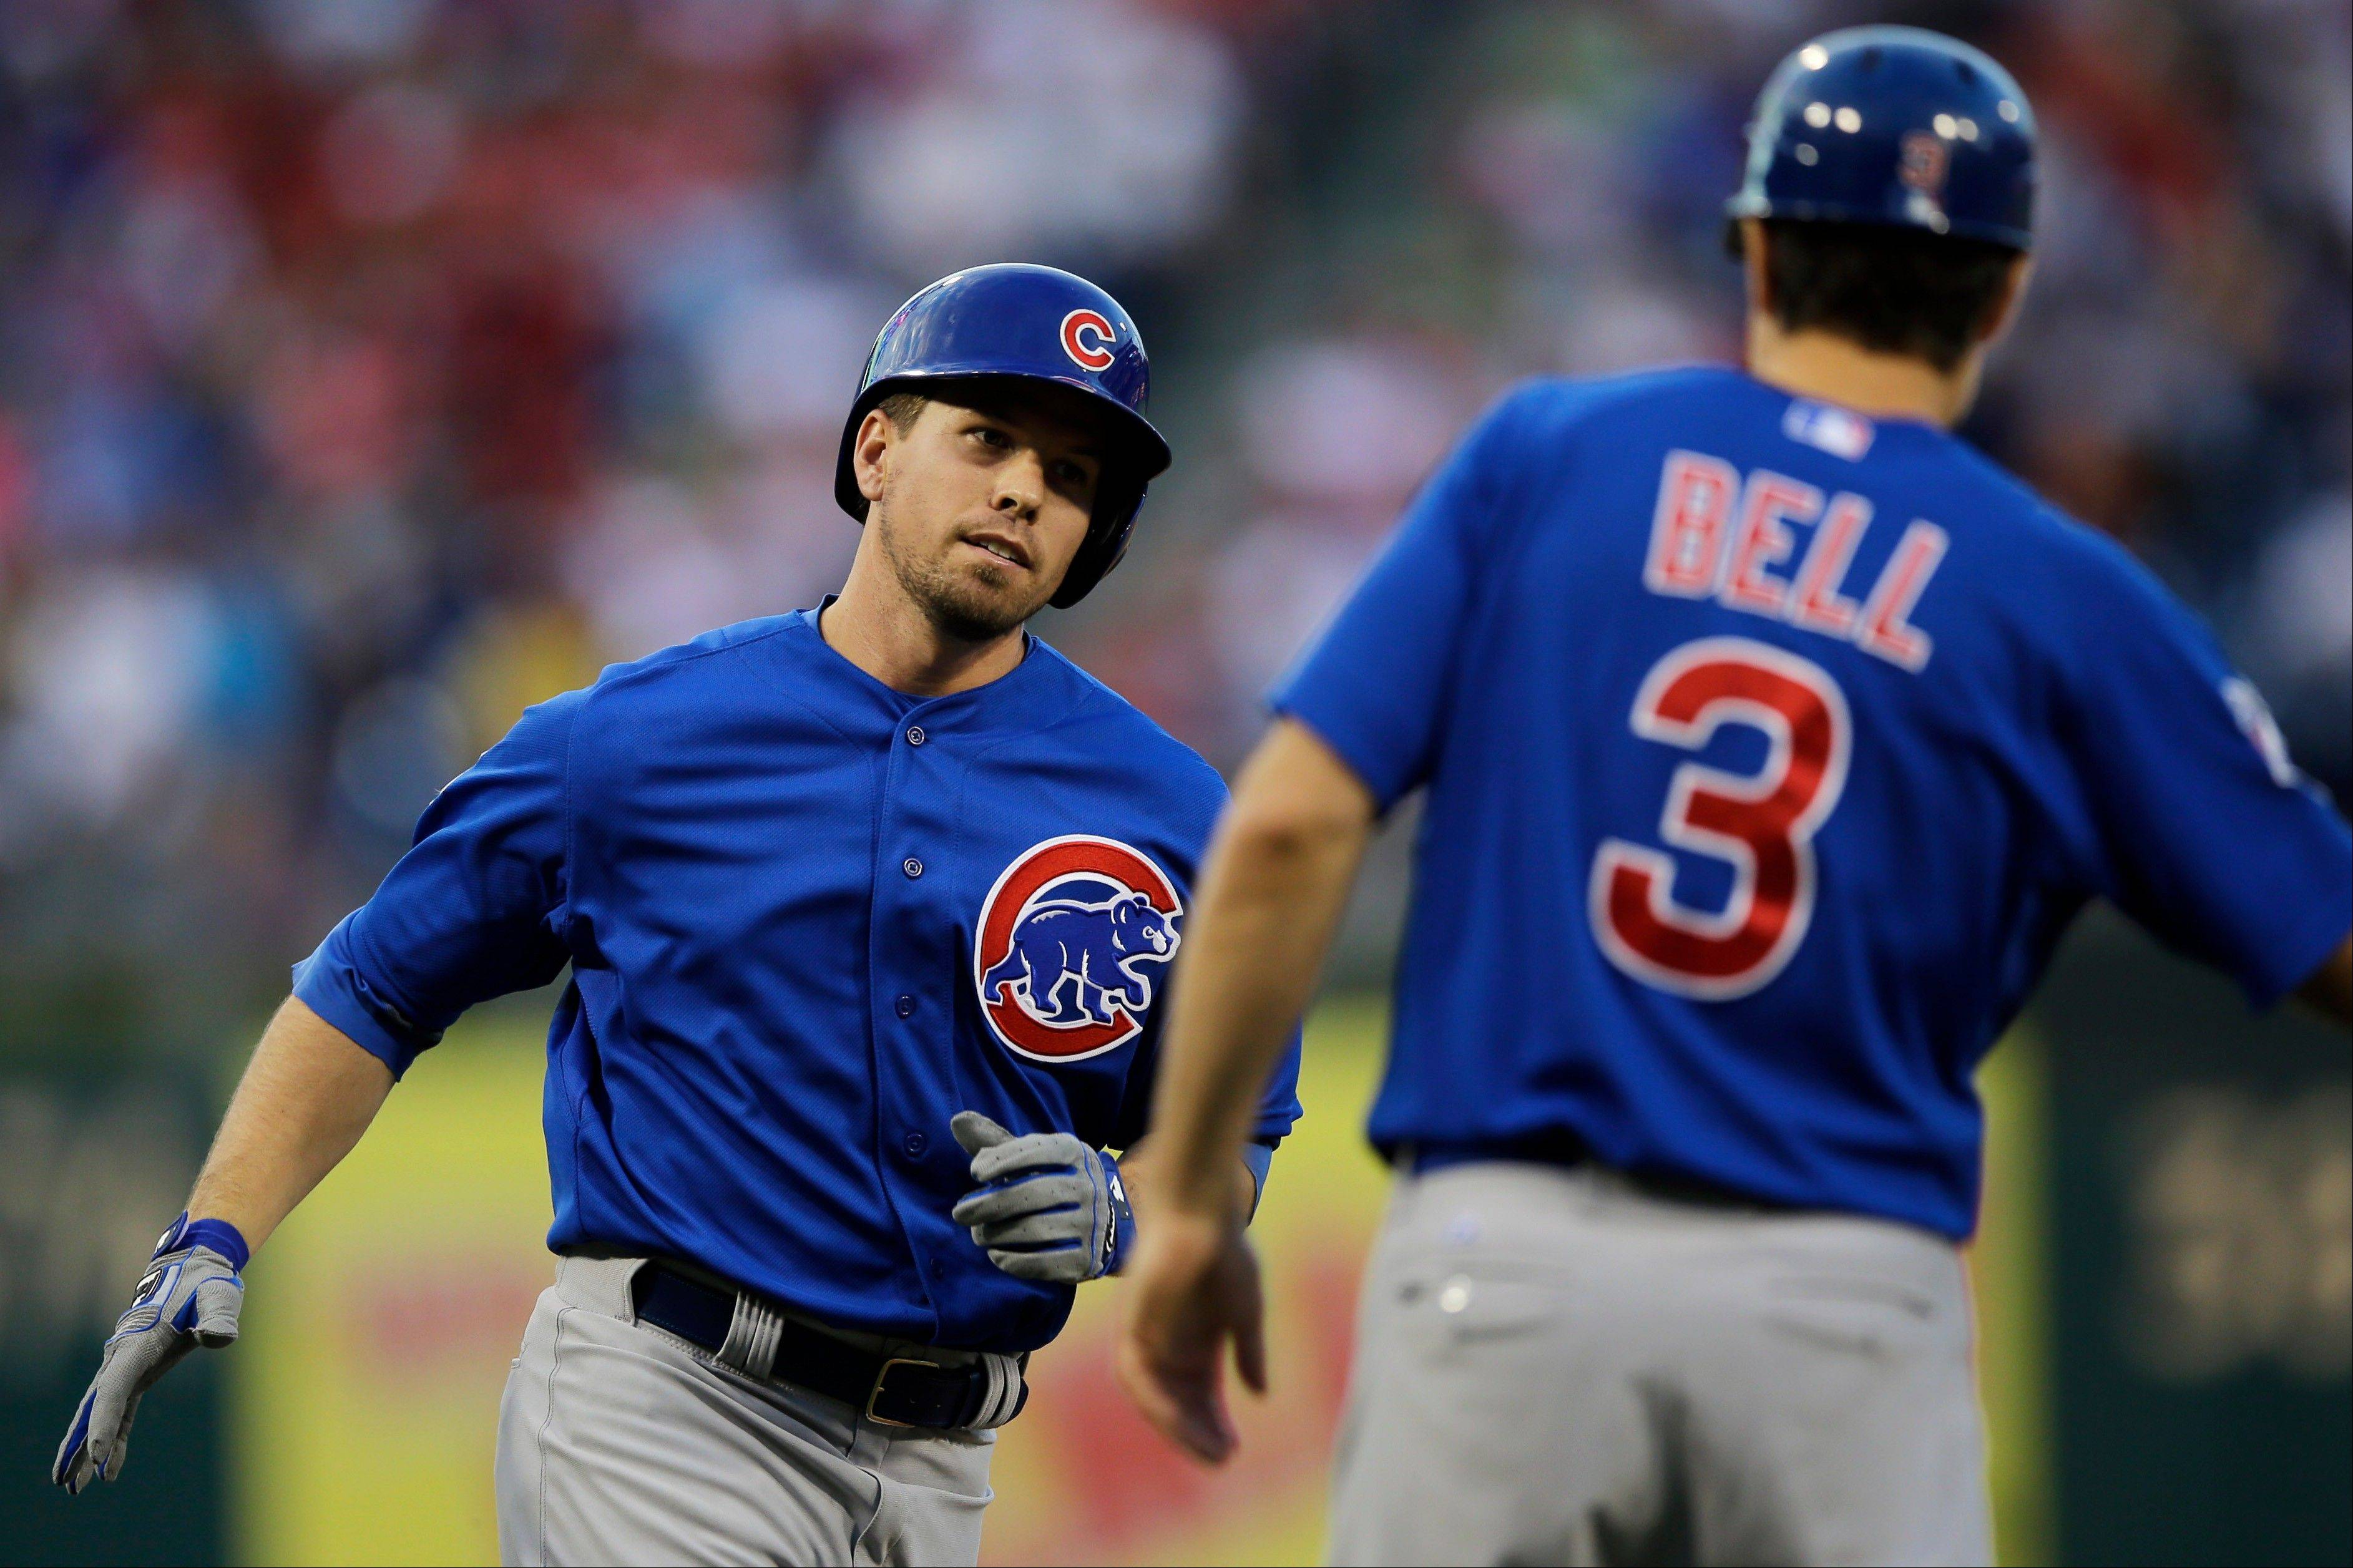 Chicago Cubs' Donnie Murphy, left, celebrates with third base coach David Bell as he rounds the bases after hitting a three-run home run off Philadelphia Phillies starting pitcher Kyle Kendrick in the second inning of a baseball game, Tuesday, Aug. 6, 2013, in Philadelphia.